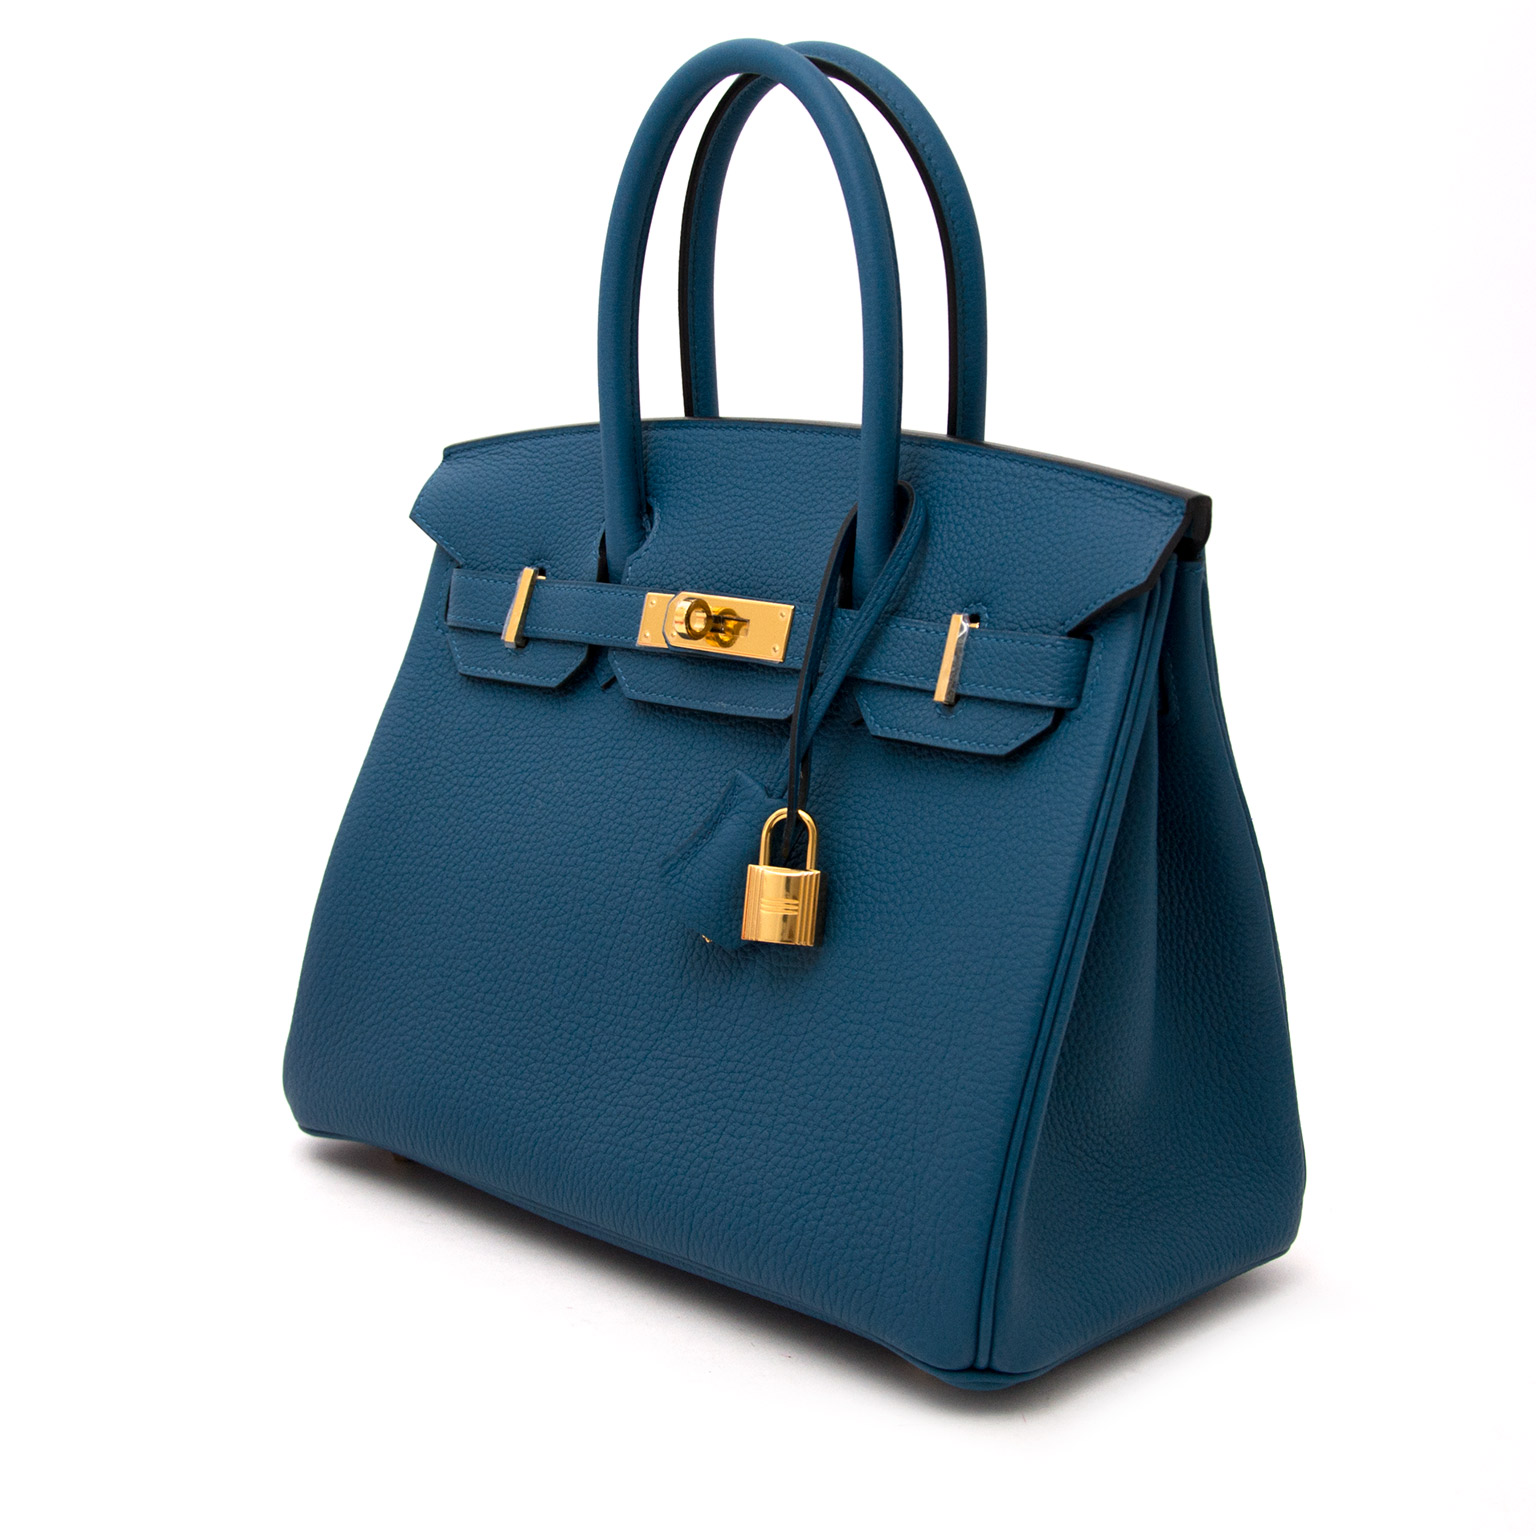 Brand new hermes birkin 30 togo cobalt now online at labellov.com Buy and  sell your designer handbags for the best price at labellov.co Hermes Birkin 47ed9e491058c